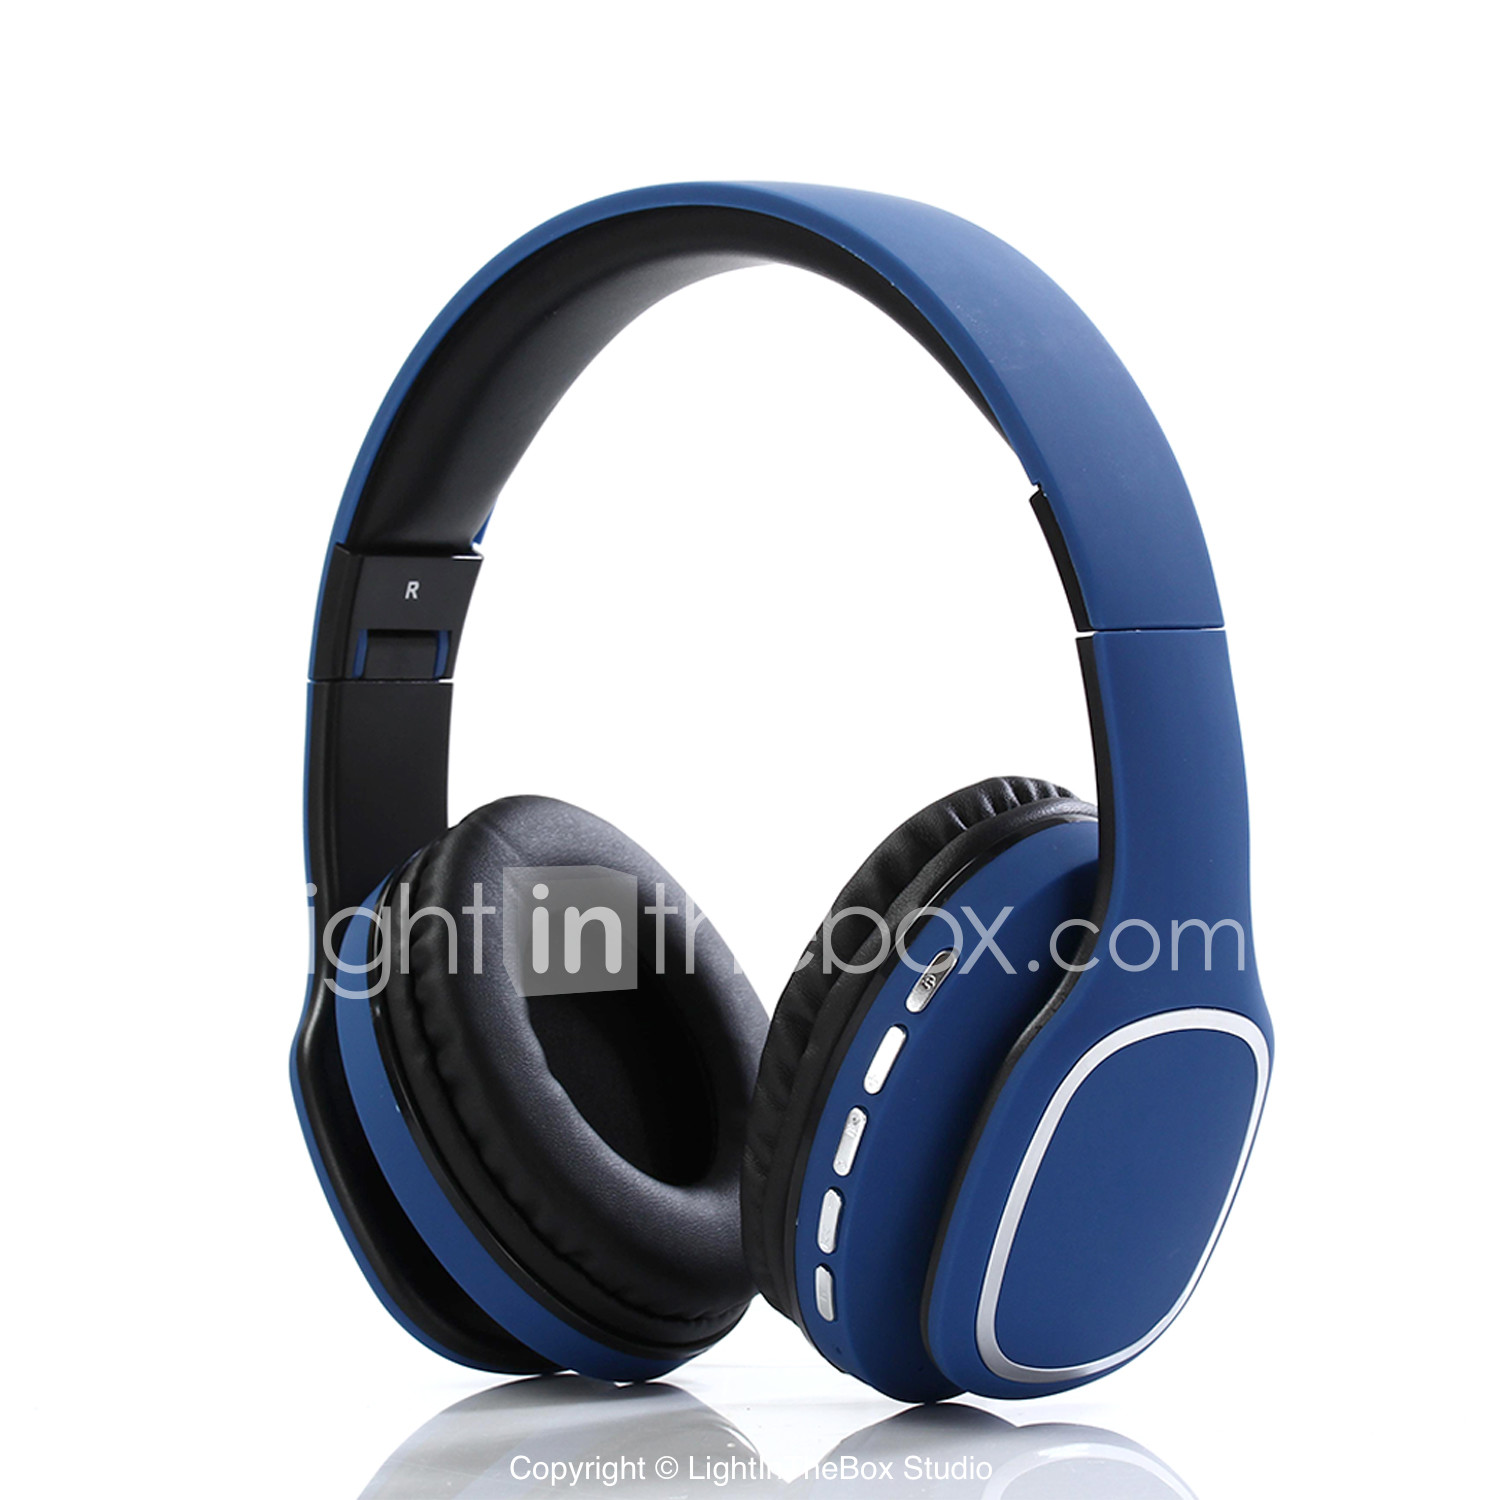 Litbest Bt012 Over Ear Headphone Wireless Travel Entertainment Bluetooth 4 2 Stereo 7150012 2020 19 99